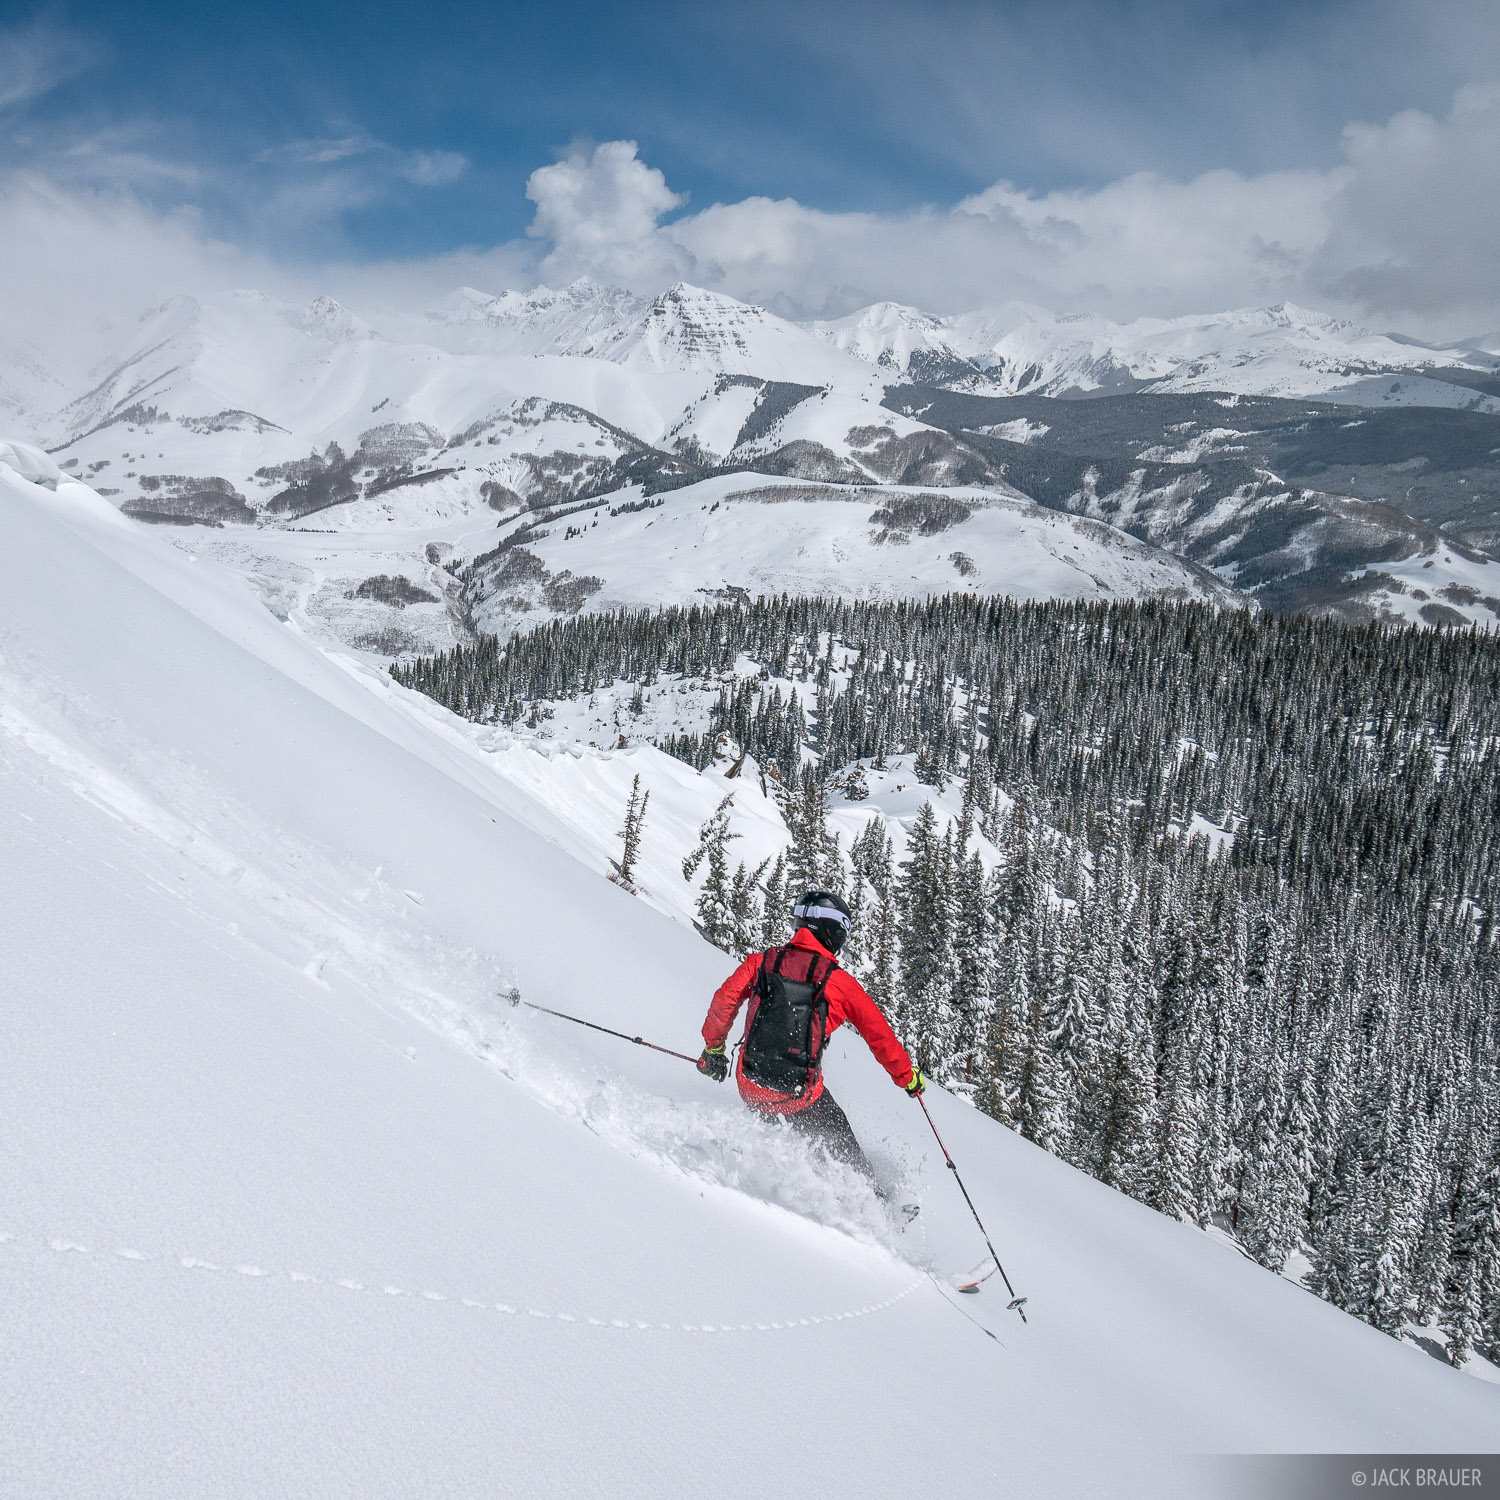 Paul DiG skis Teocalli Bowl on Mt. Crested Butte in late April after the lifts have closed.